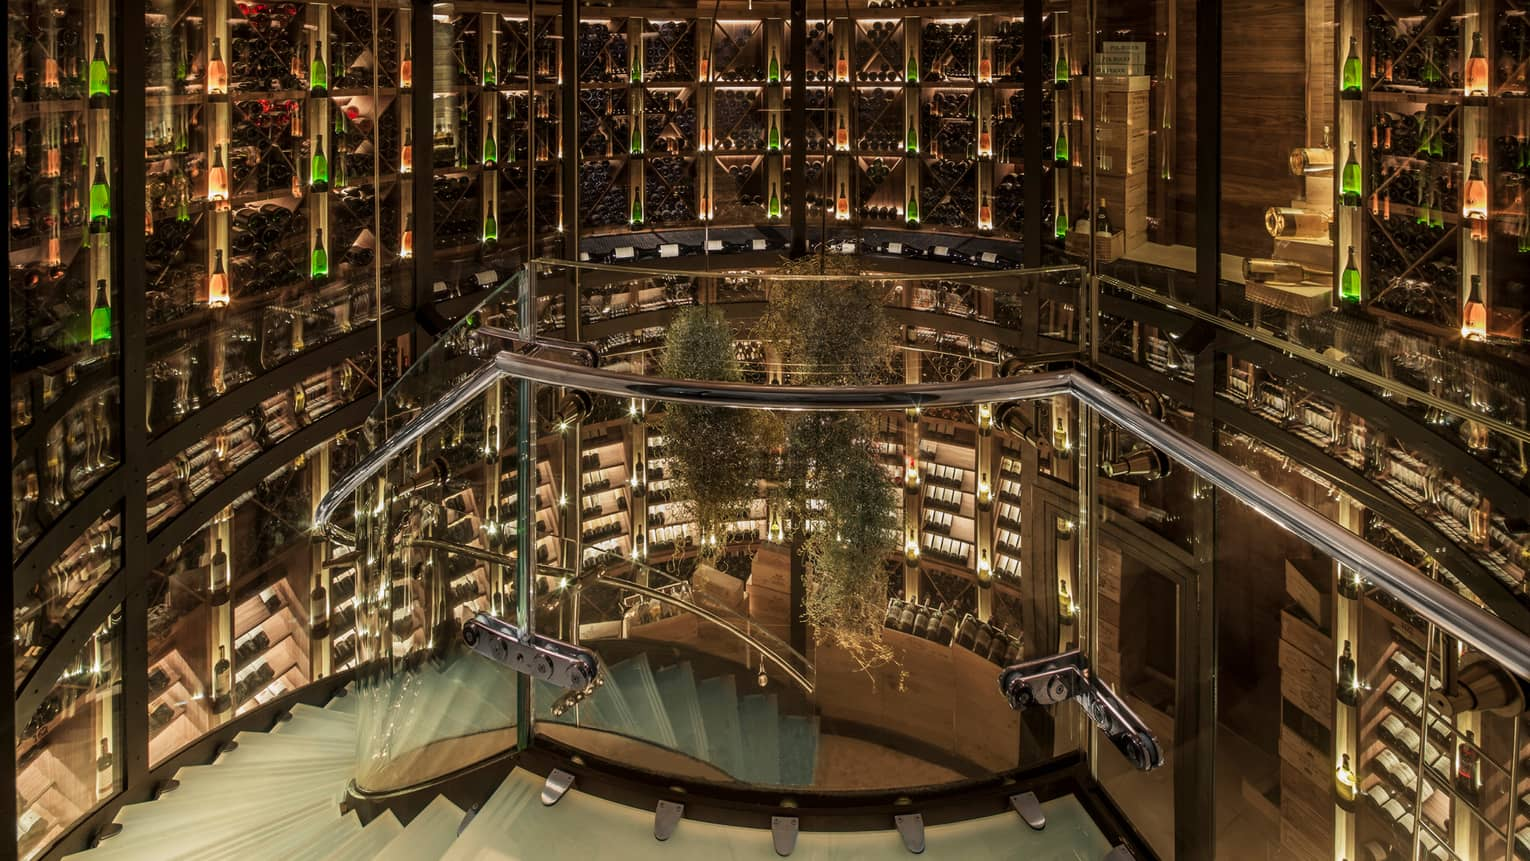 Spiral, glass staircase winding through multi-level wine cellar